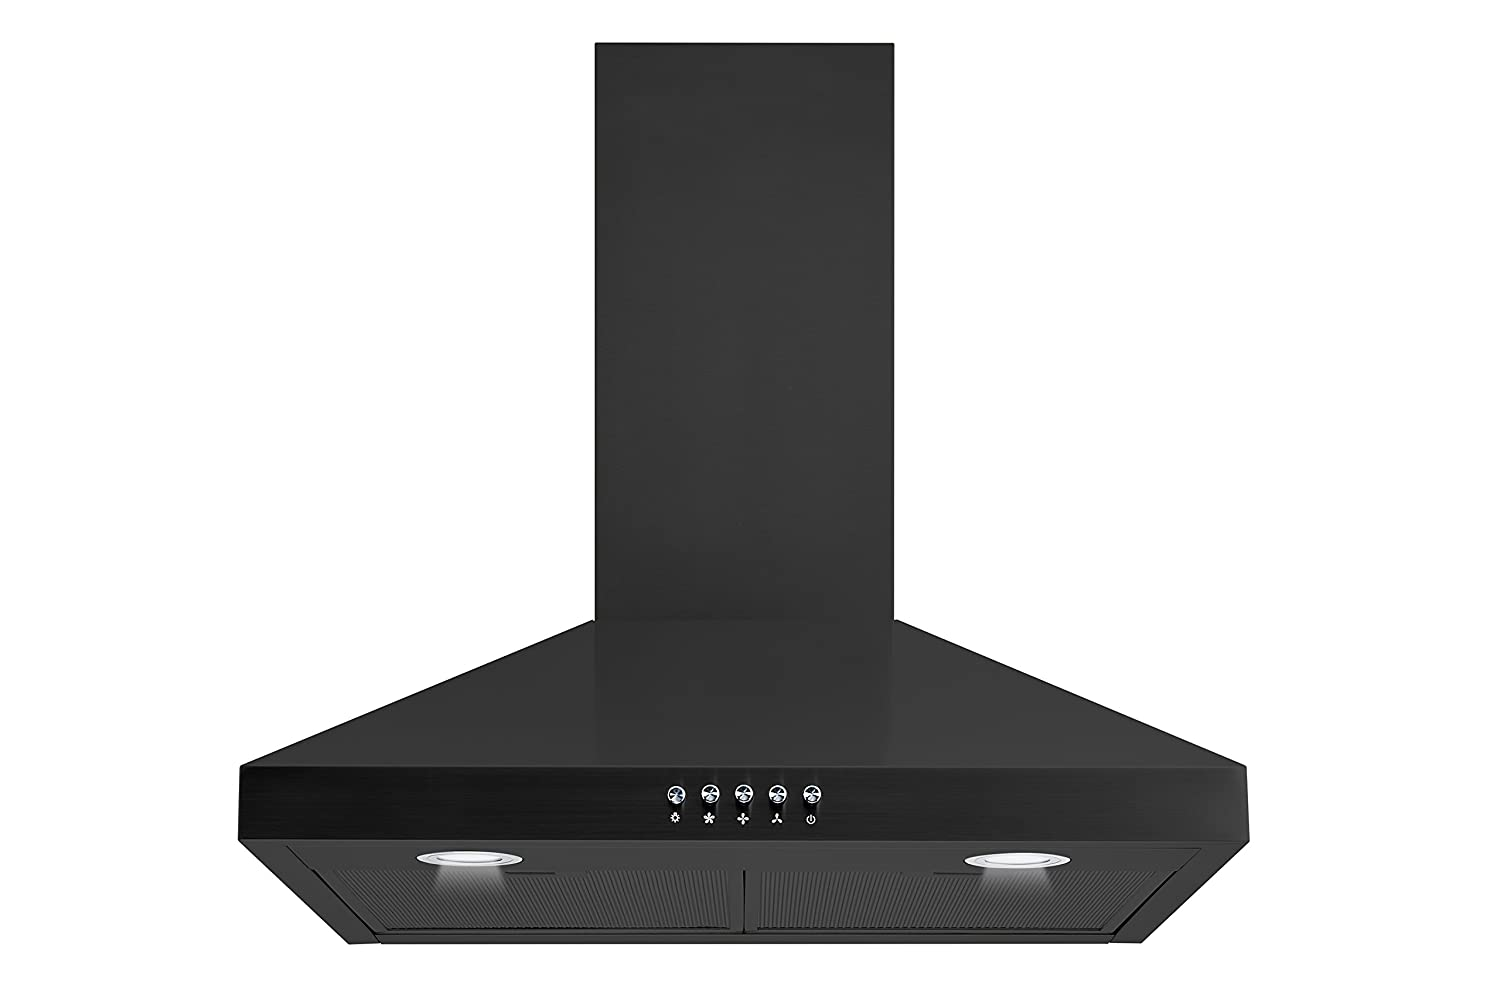 "Winflo New 30"" Convertible Black Color Wall Mount Range Hood with Aluminum Mesh filter, Ultra bright LED lights and Push Button 3 Speed Control"